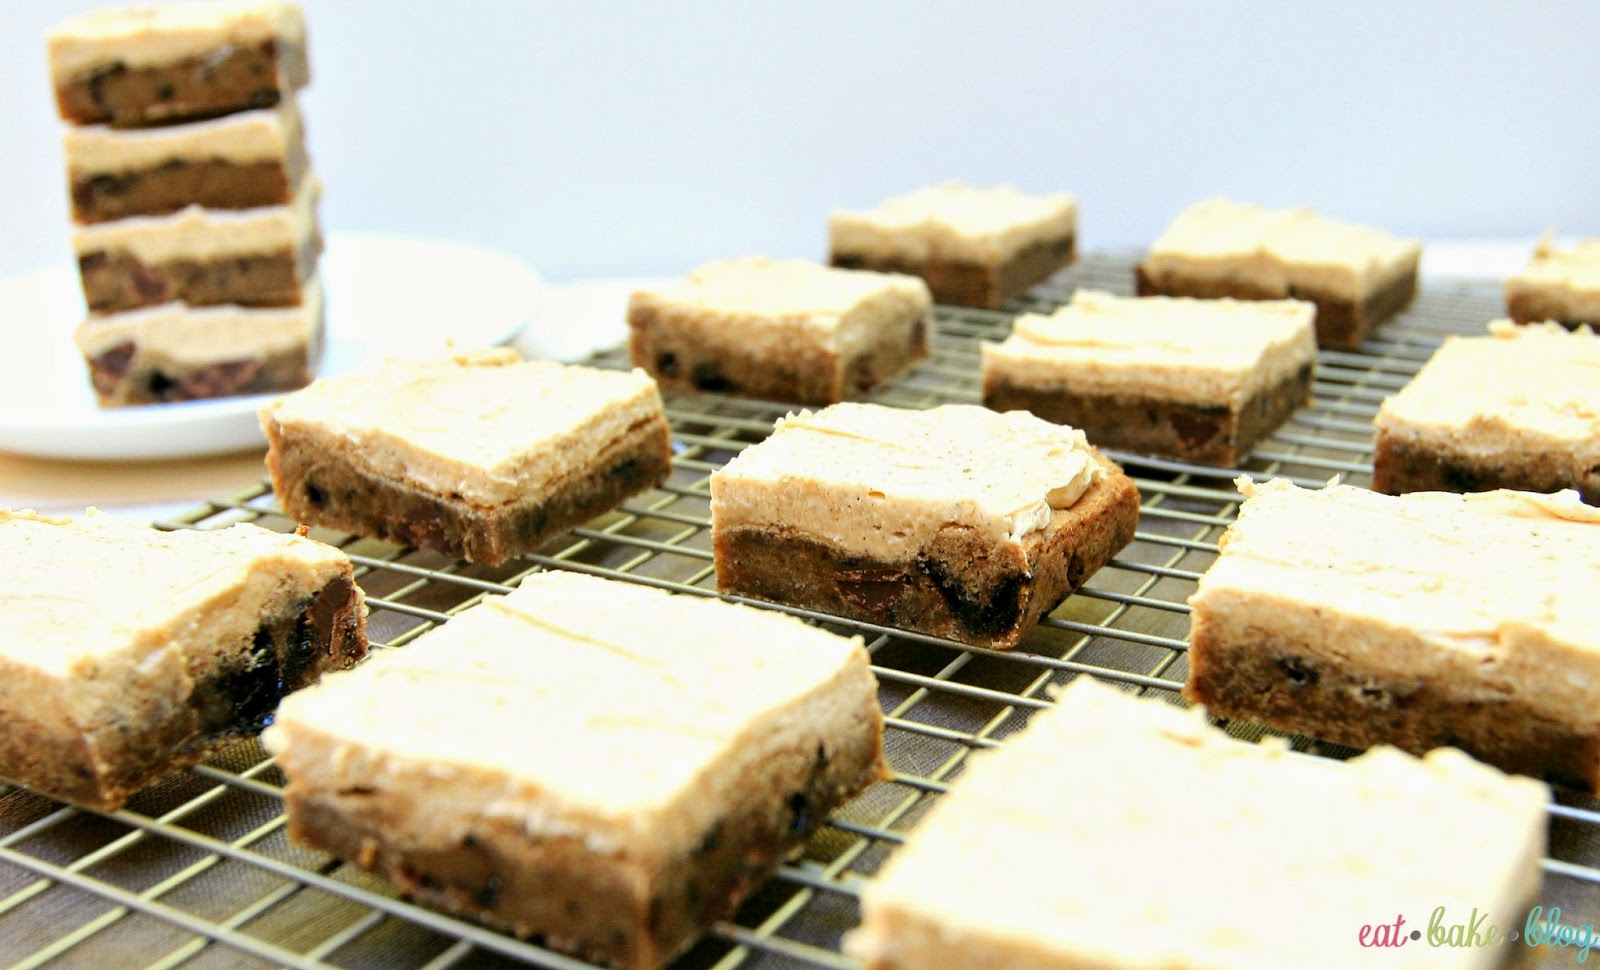 best blondies recipe easy chocolate chip blondies browned butter blondies recipe Bailey's recipe St. Patrick's Day dessert recipe